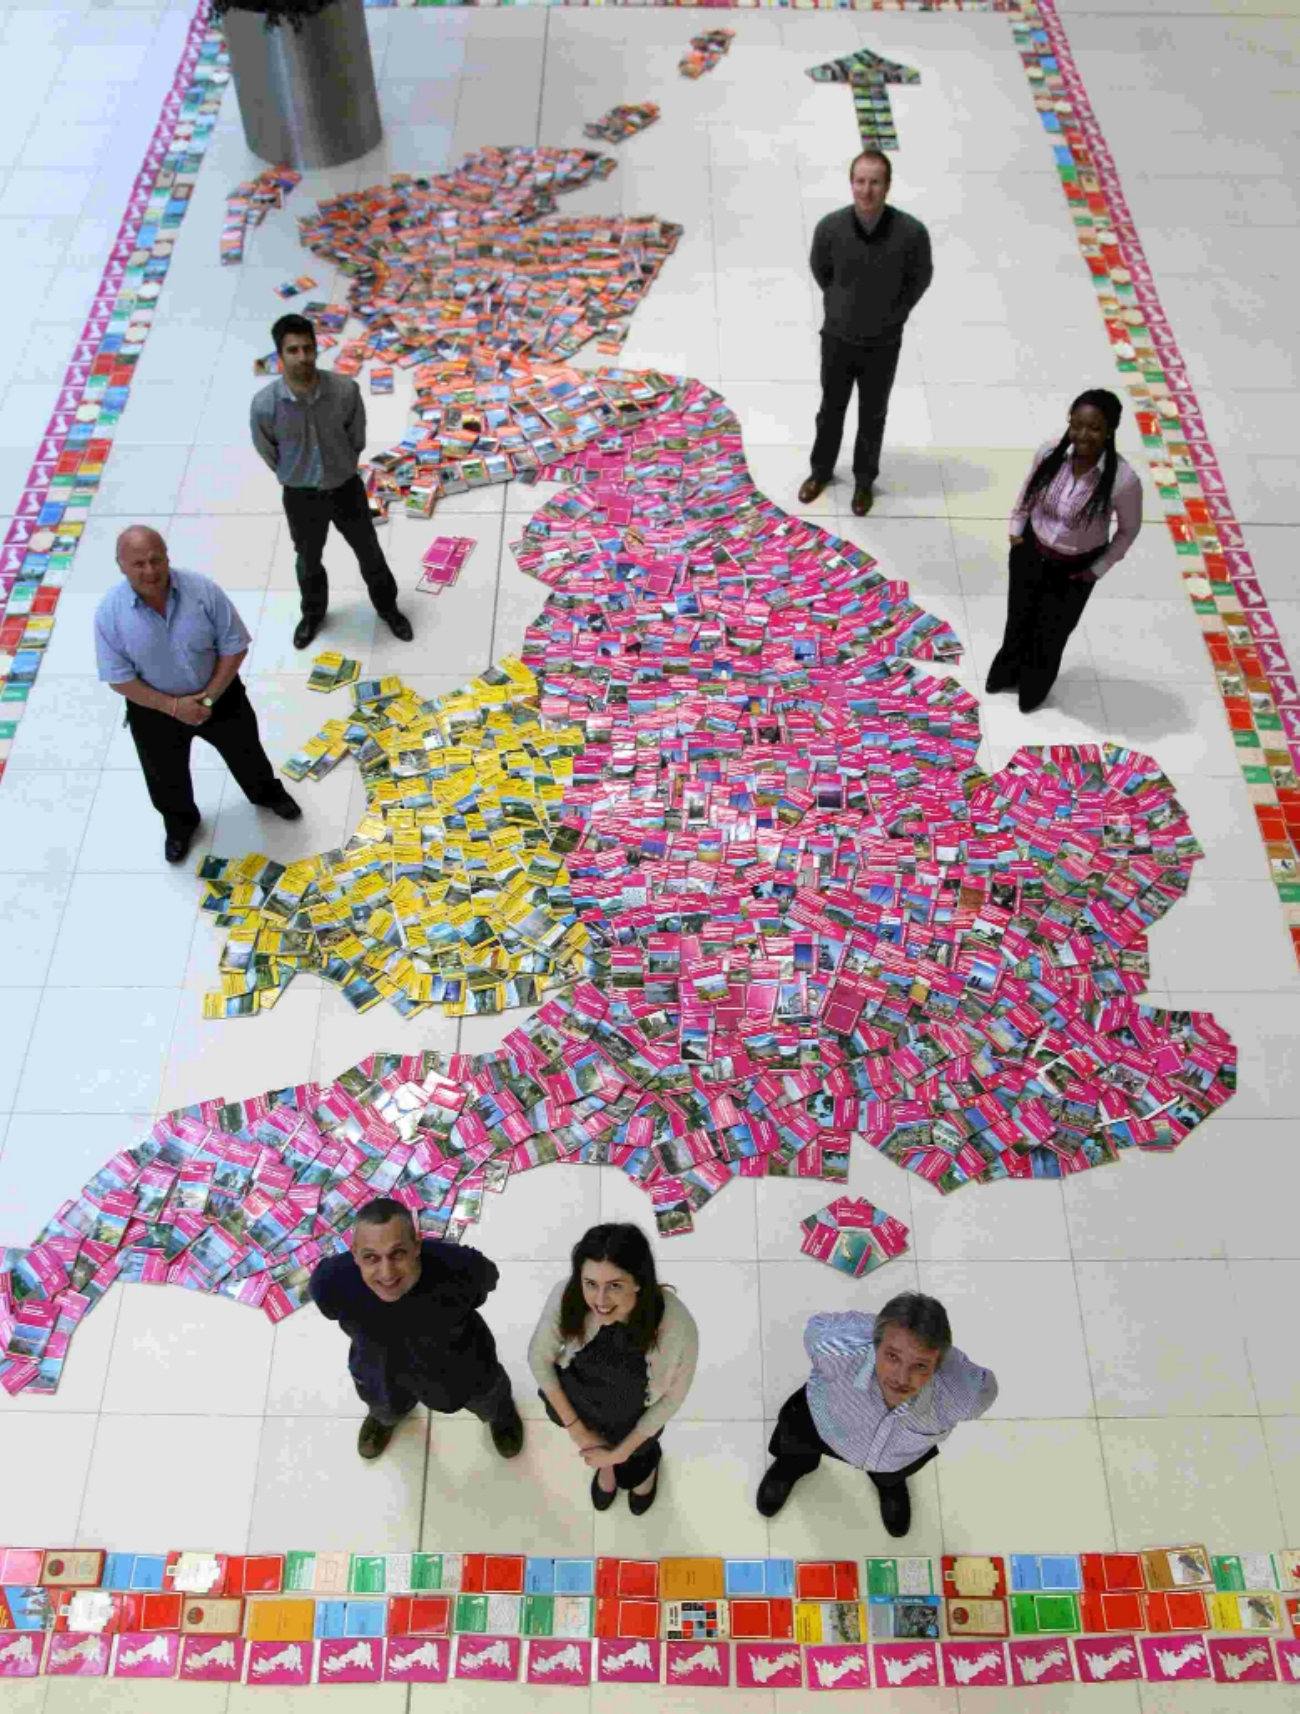 DIRECTIONS: Ordnance Survey staff at Adanac Park with a giant map of Great Britain made of old maps that have been handed in by the public in exchange for new ones.